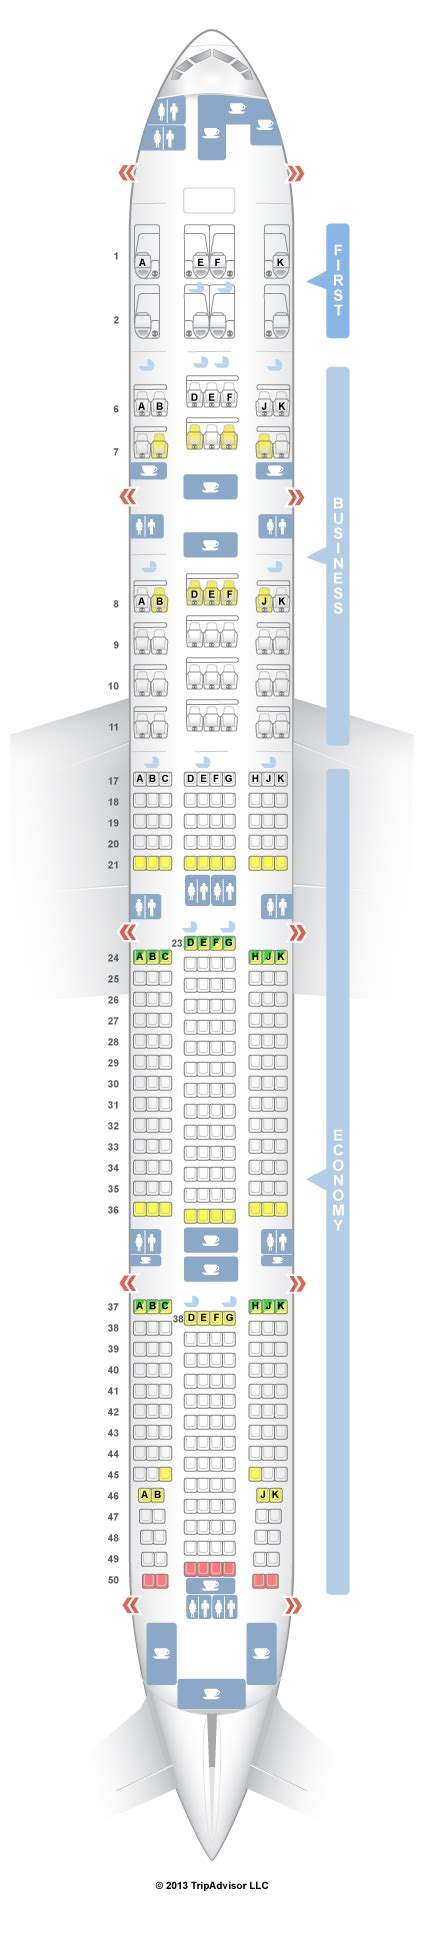 emirates seat map seatguru seat map emirates boeing 777 300er 77w three